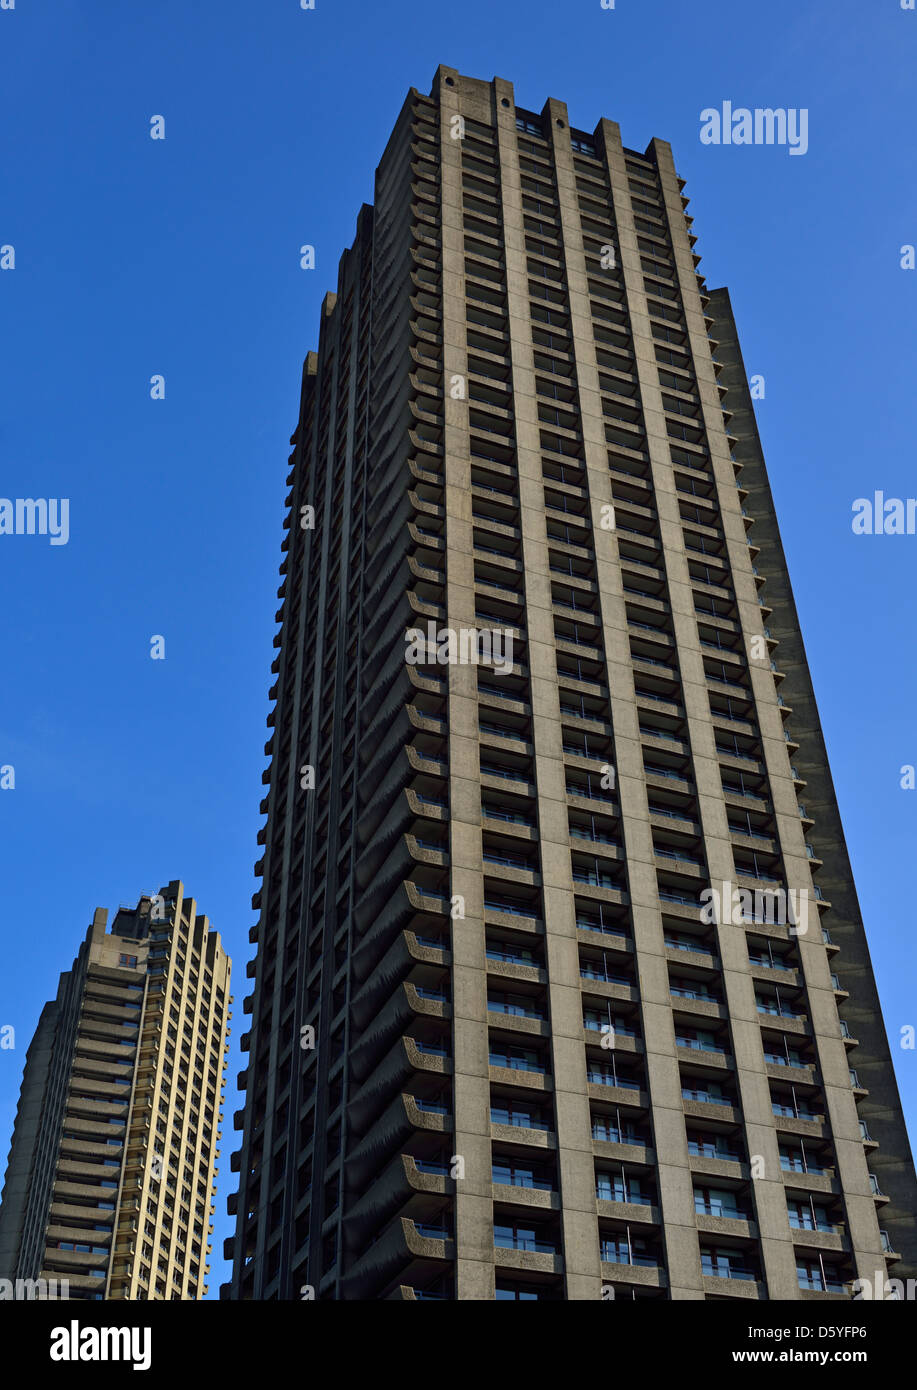 Barbican Estate, Moorgate, London EC2, United Kingdom - Stock Image